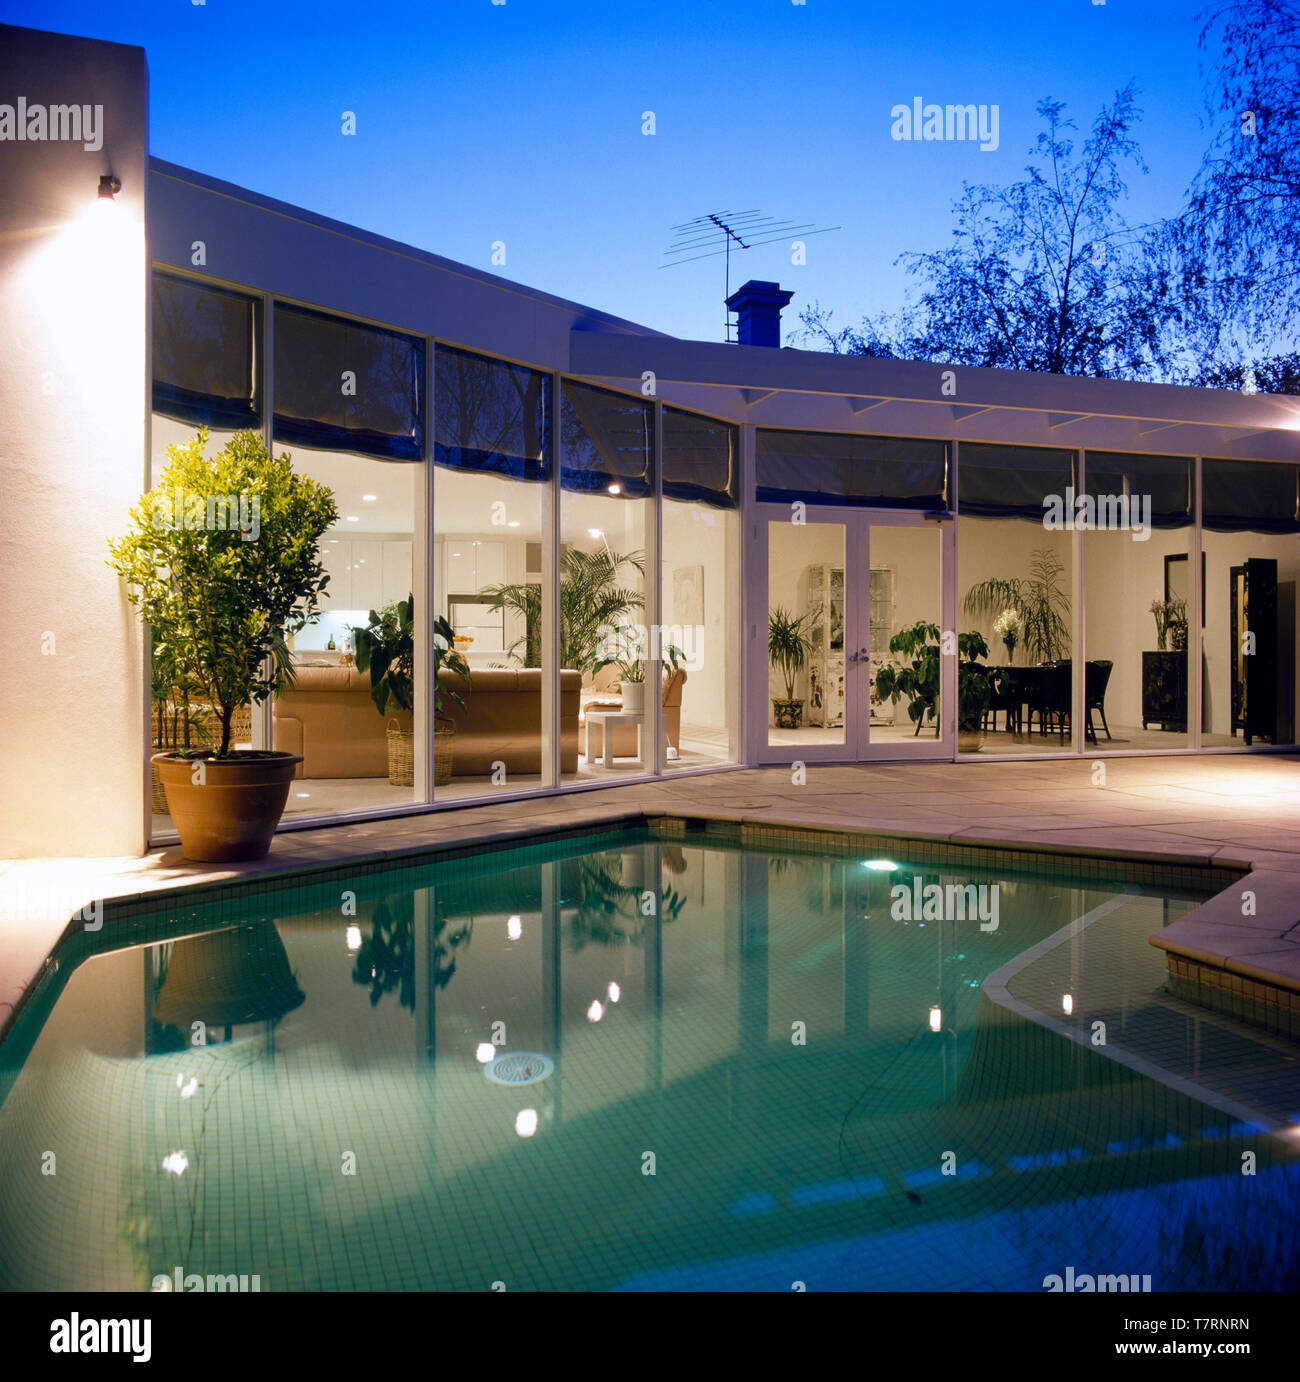 Swimming pool in front of a single storey house with glass ...